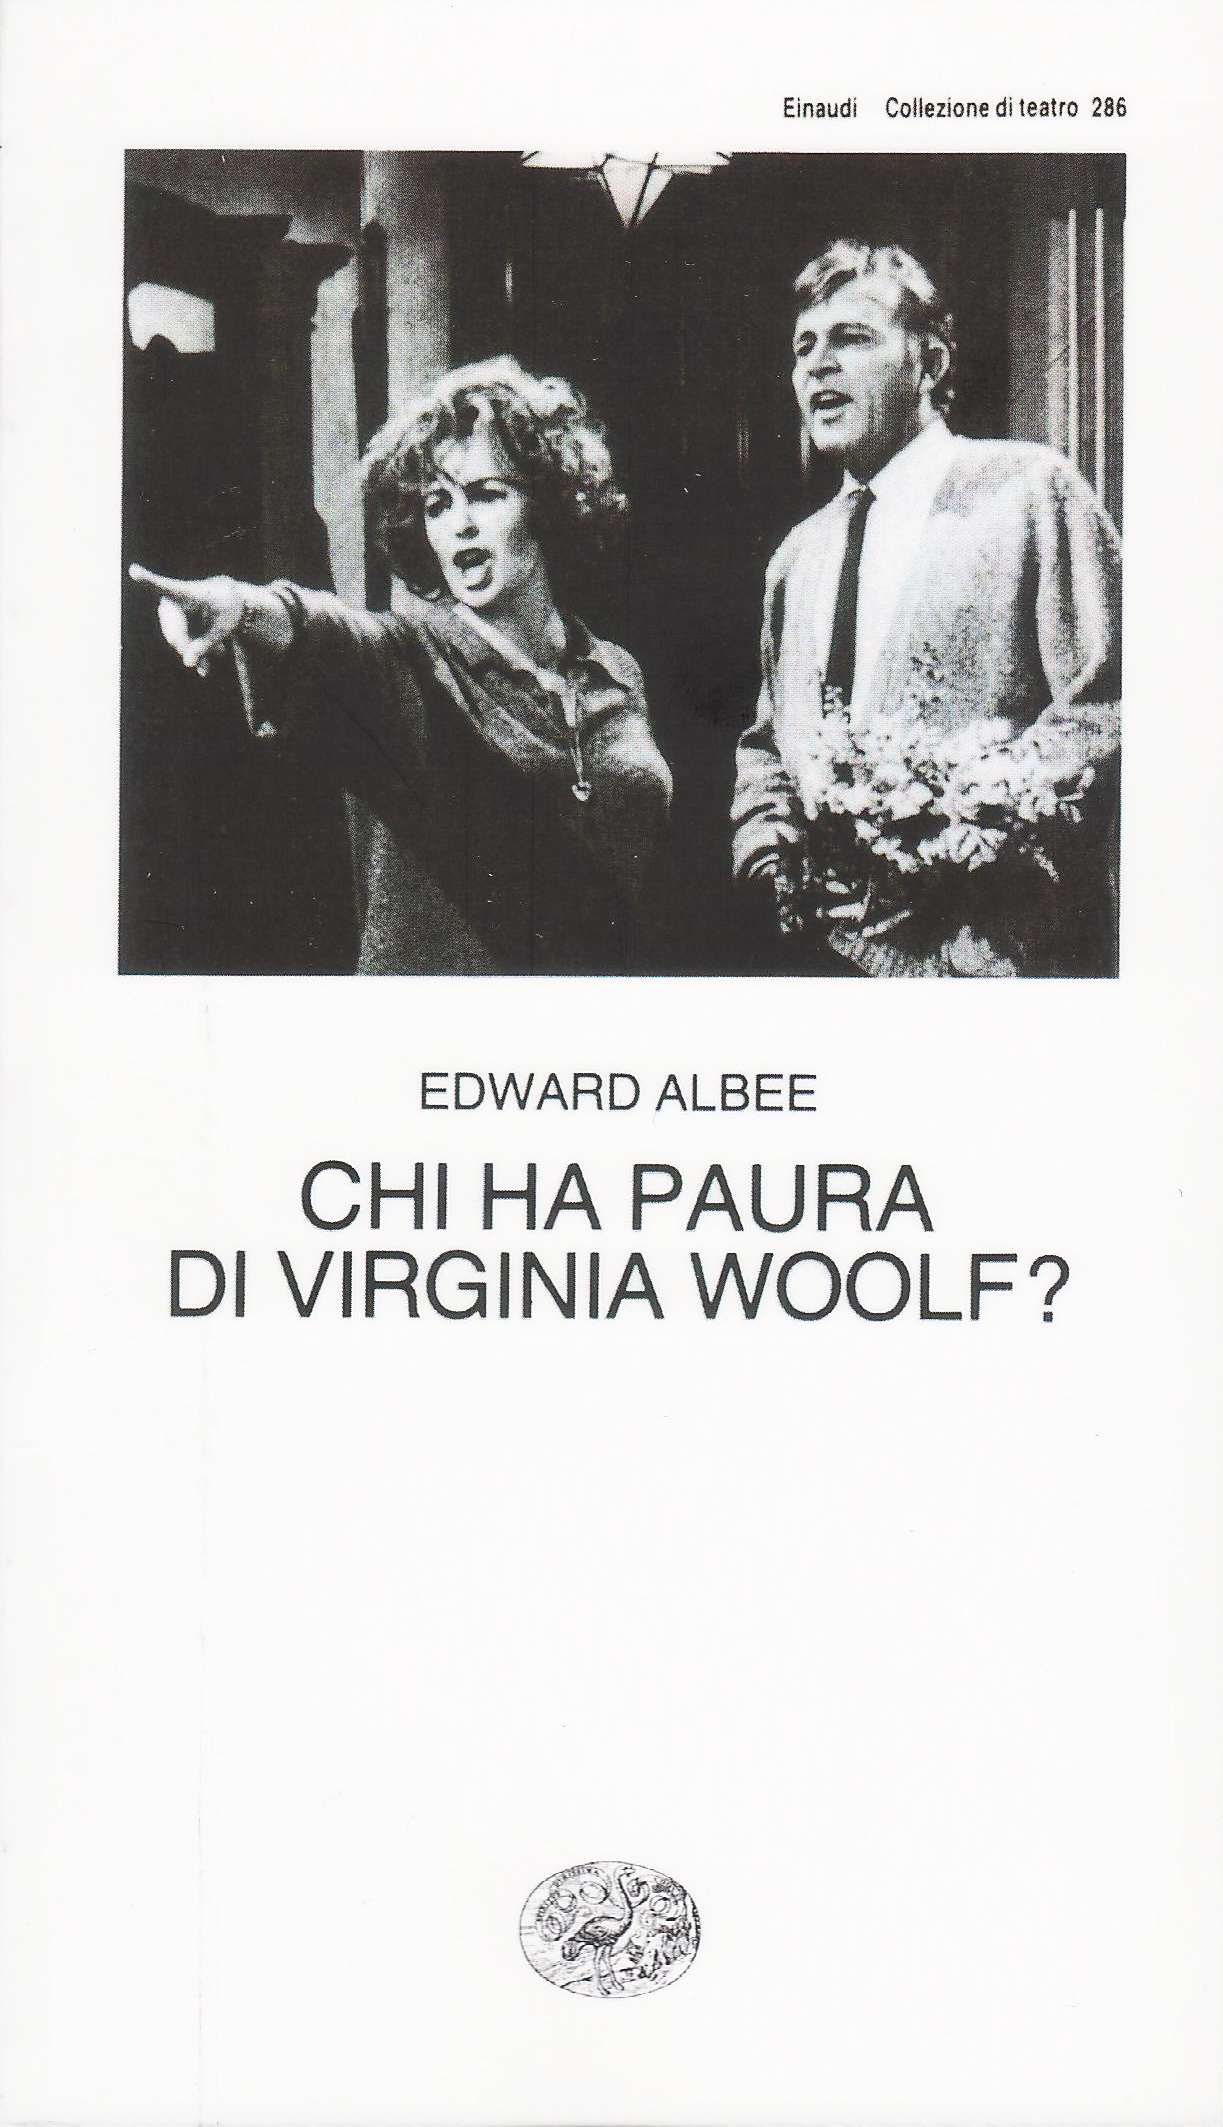 Edward Albee, Chi ha paura di Virginia Woolf?, Einaudi